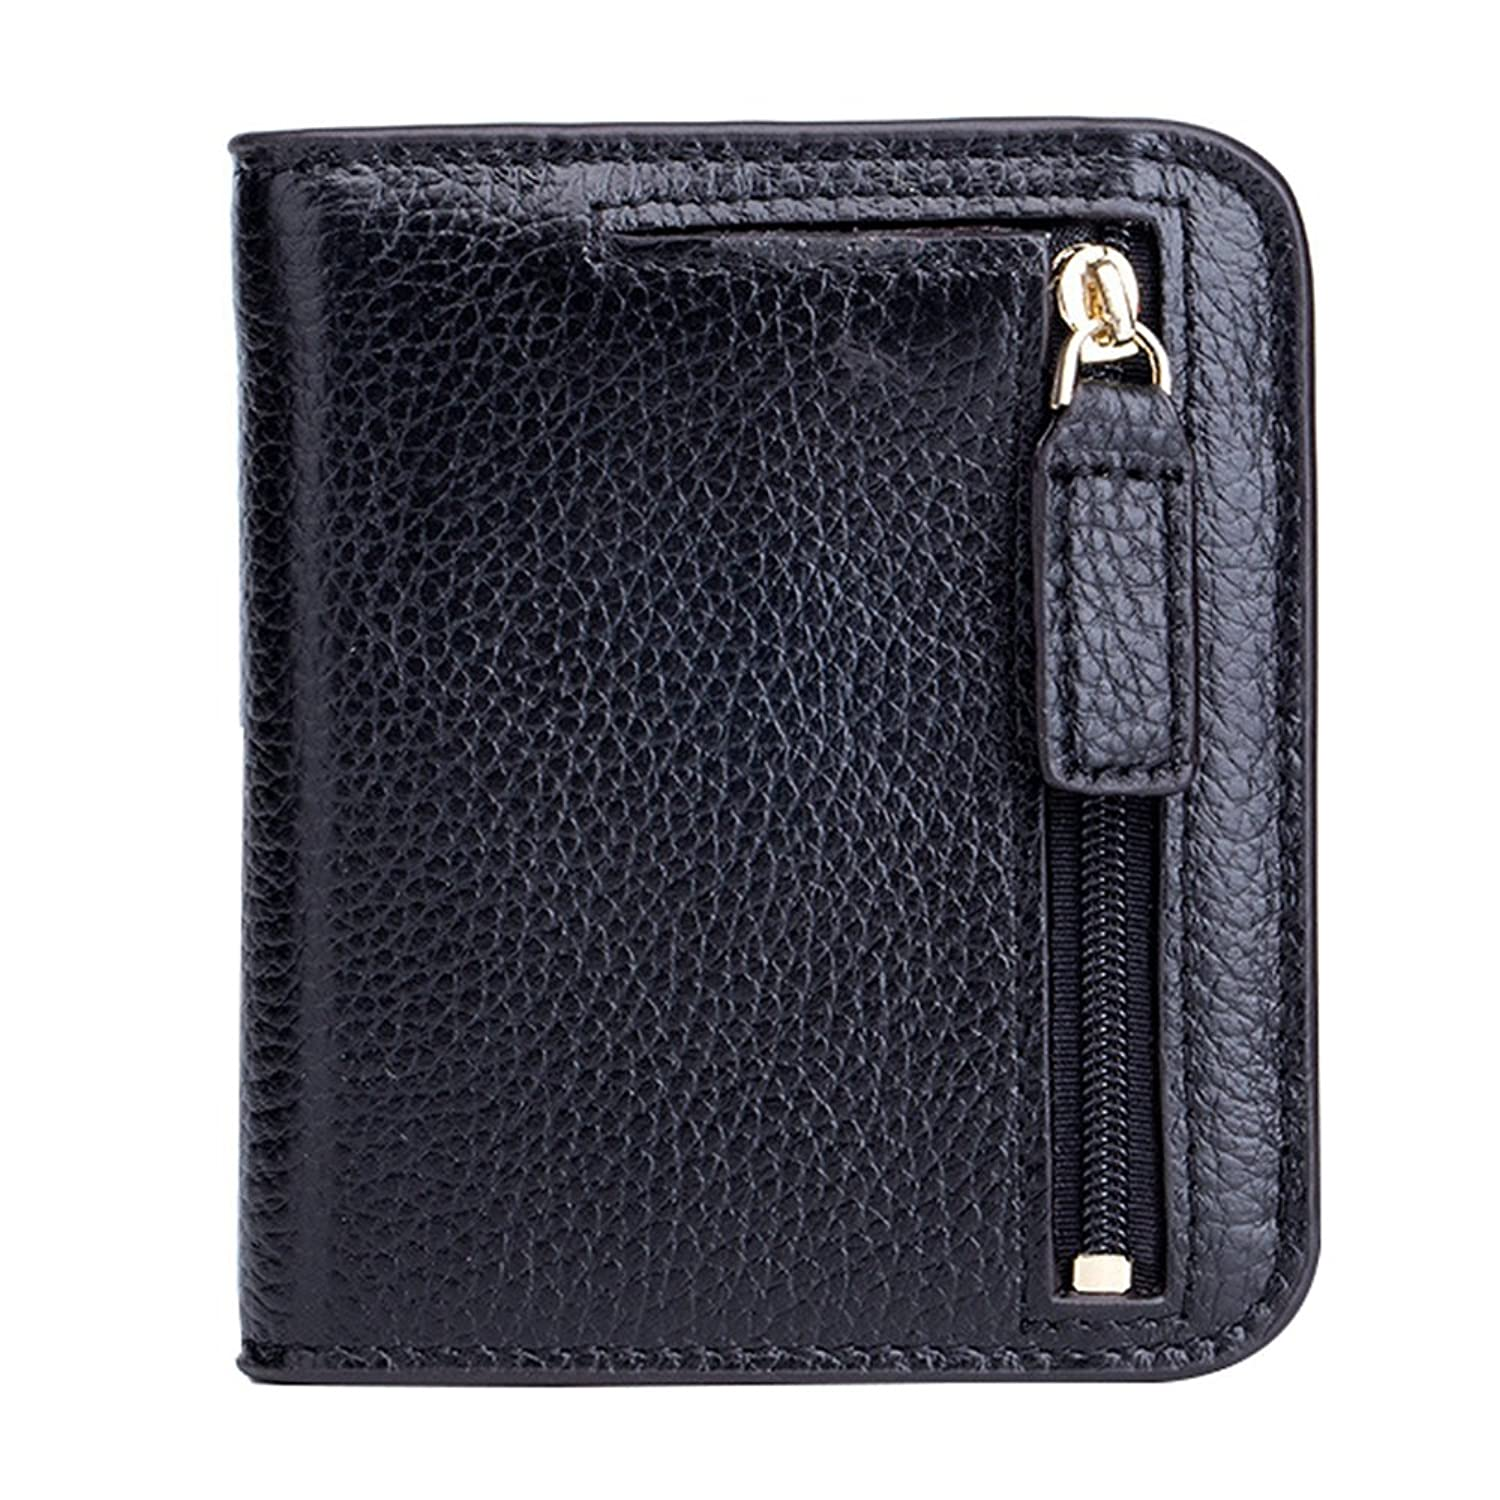 Aladin Ladies Small Bifold Wallet with Coin Purse - Oiled Waxed Leather